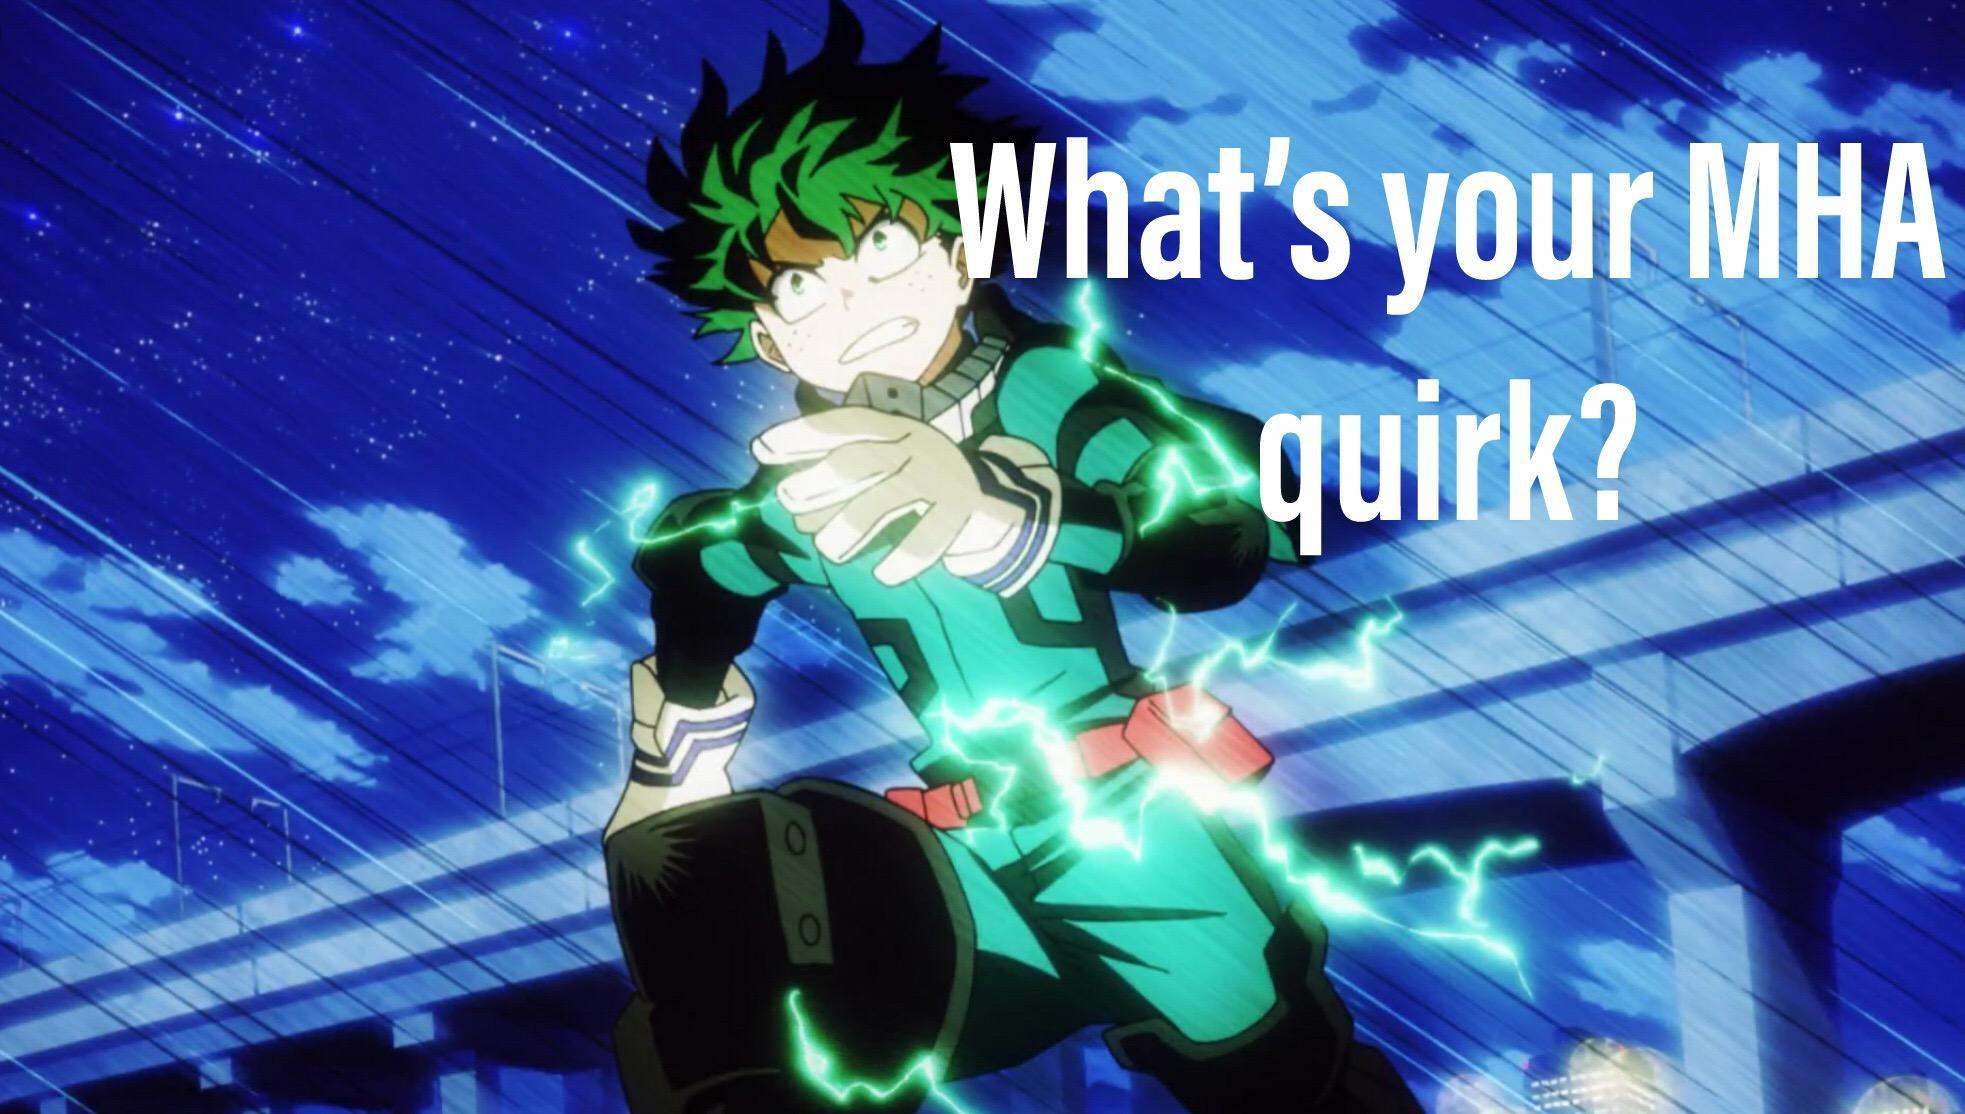 Whats is your MHA quirk